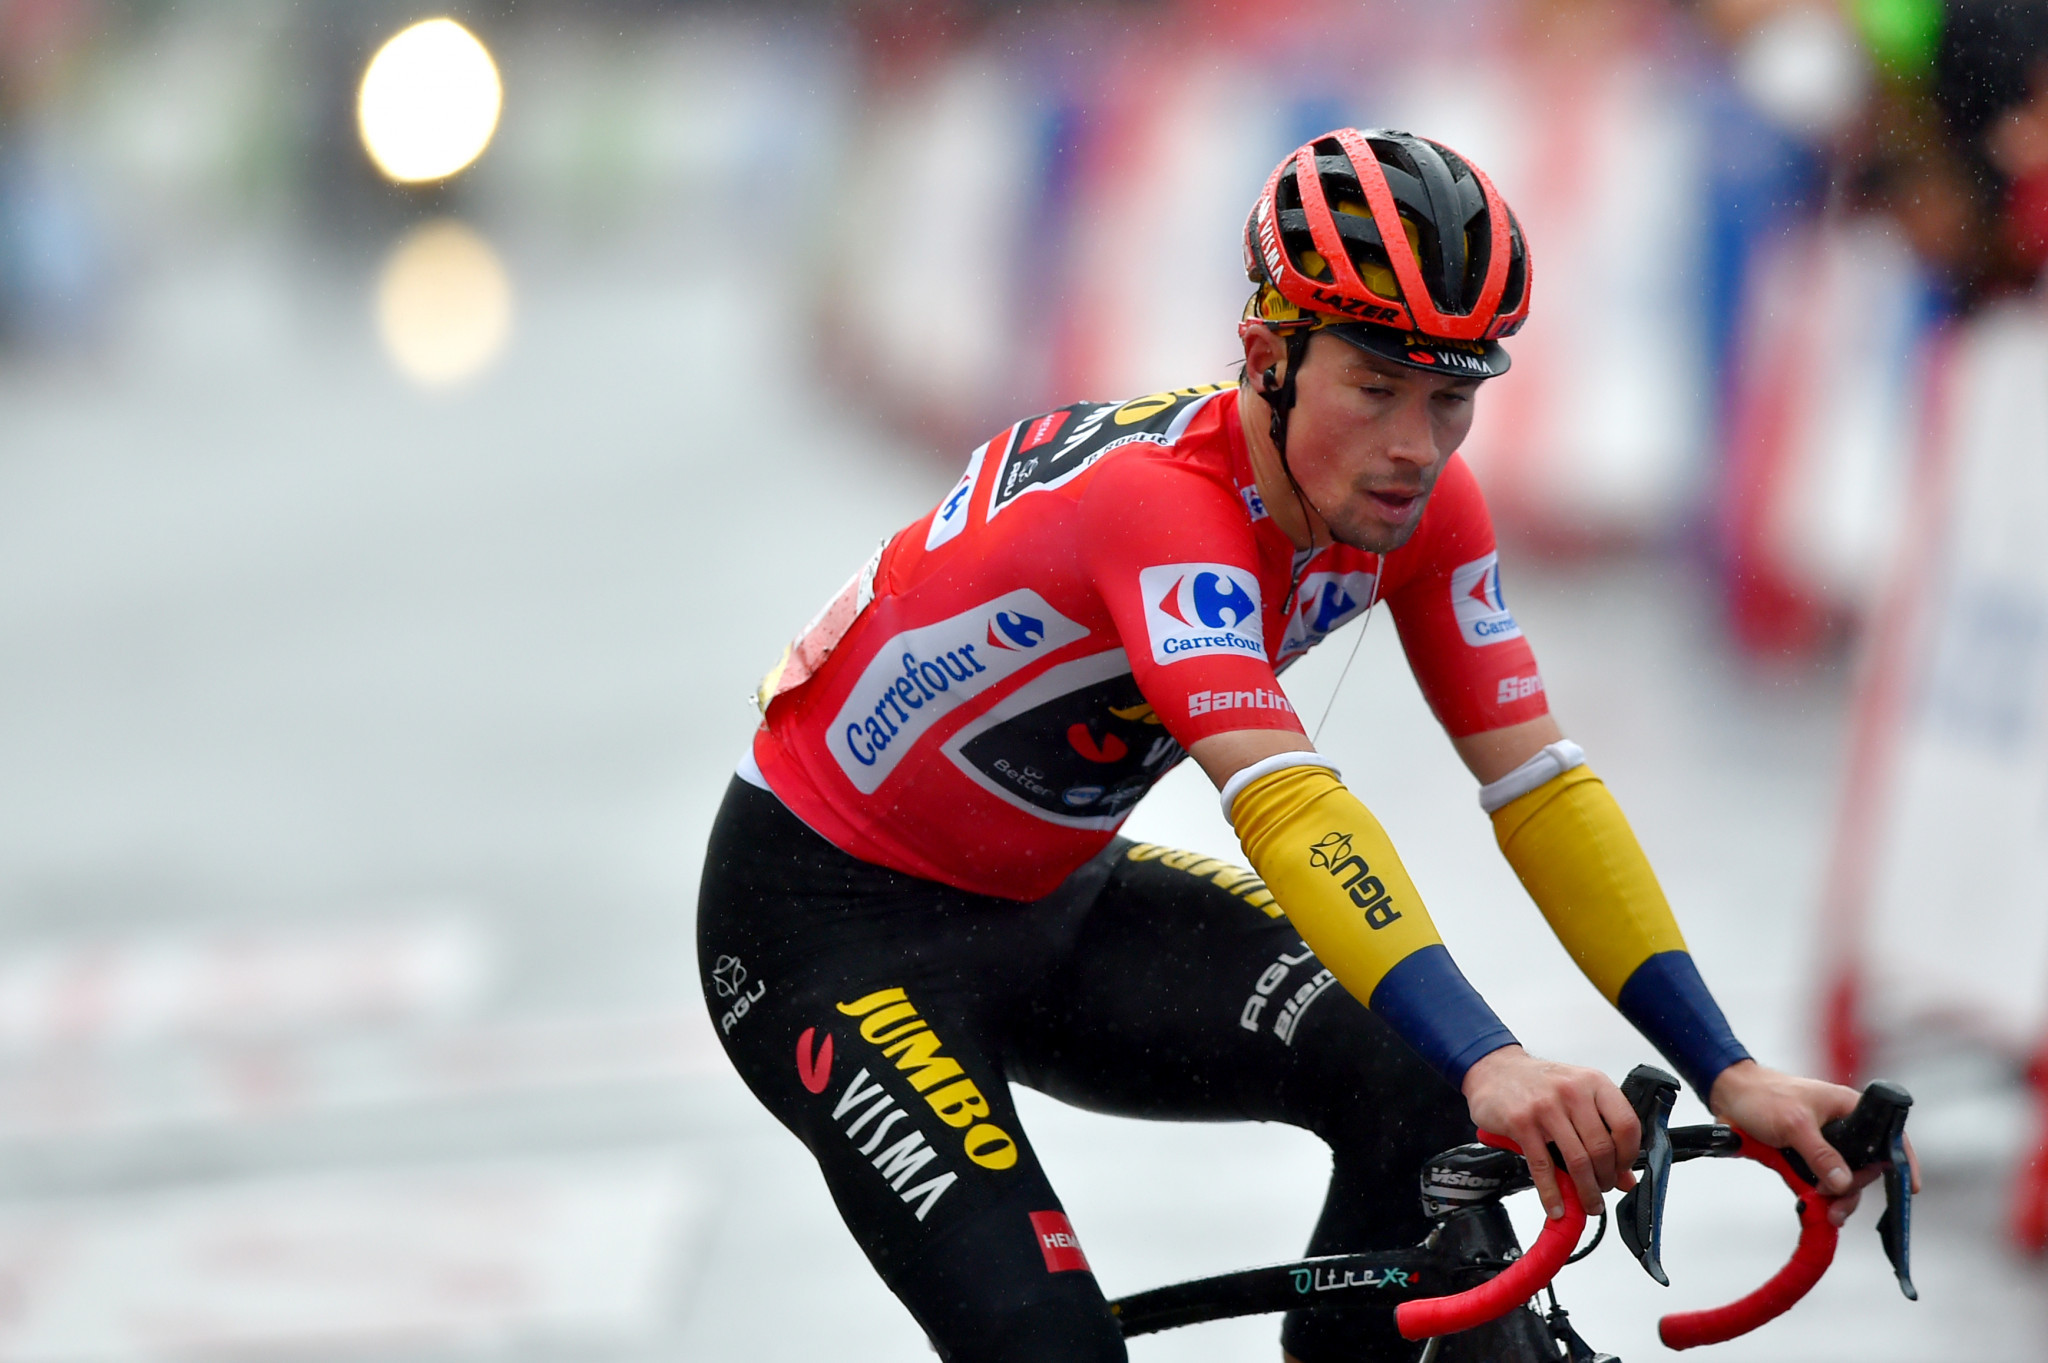 Primož Roglič will not be wearing the red jersey come the start of stage seven ©Getty Images